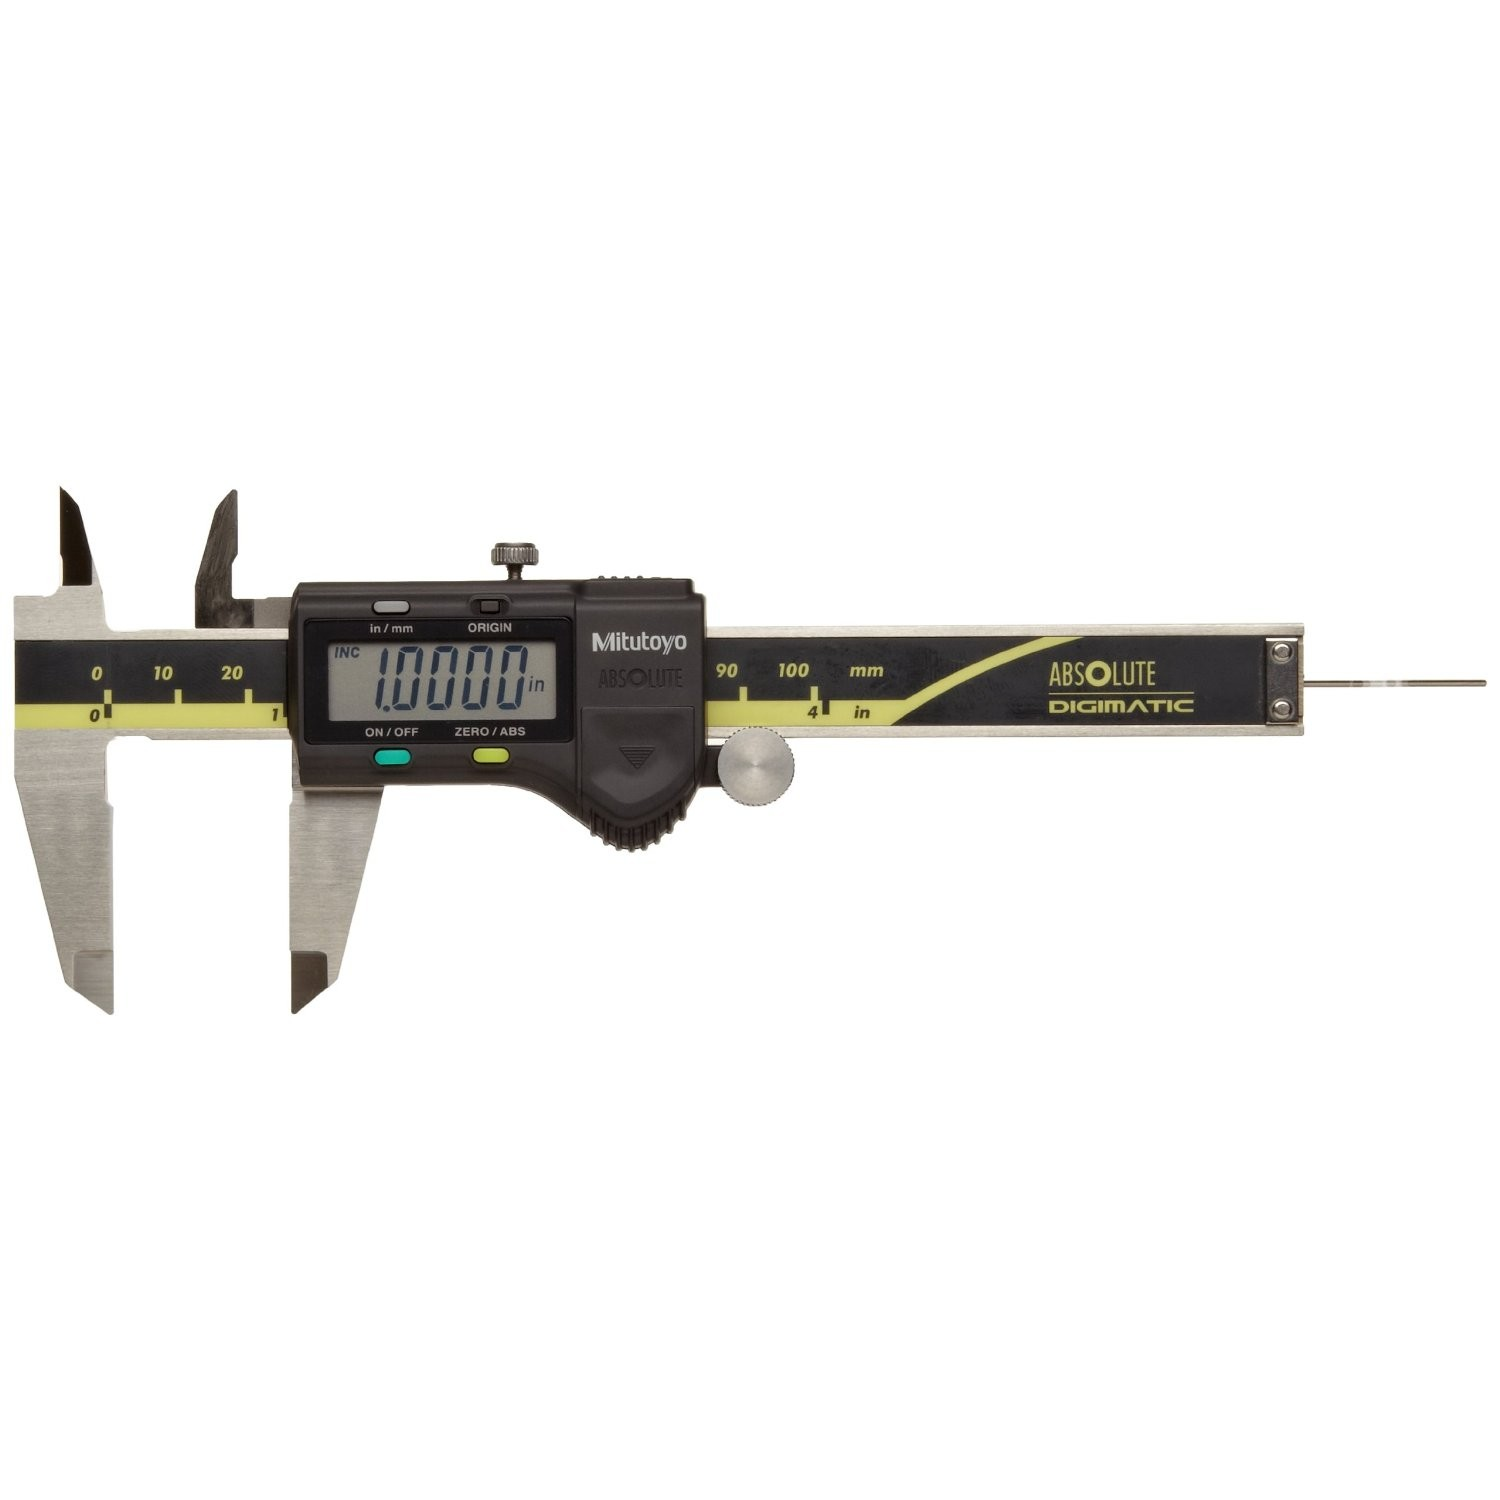 Mitutoyo 500-170-20 ABSOLUTE Digimatic Caliper with SPC output